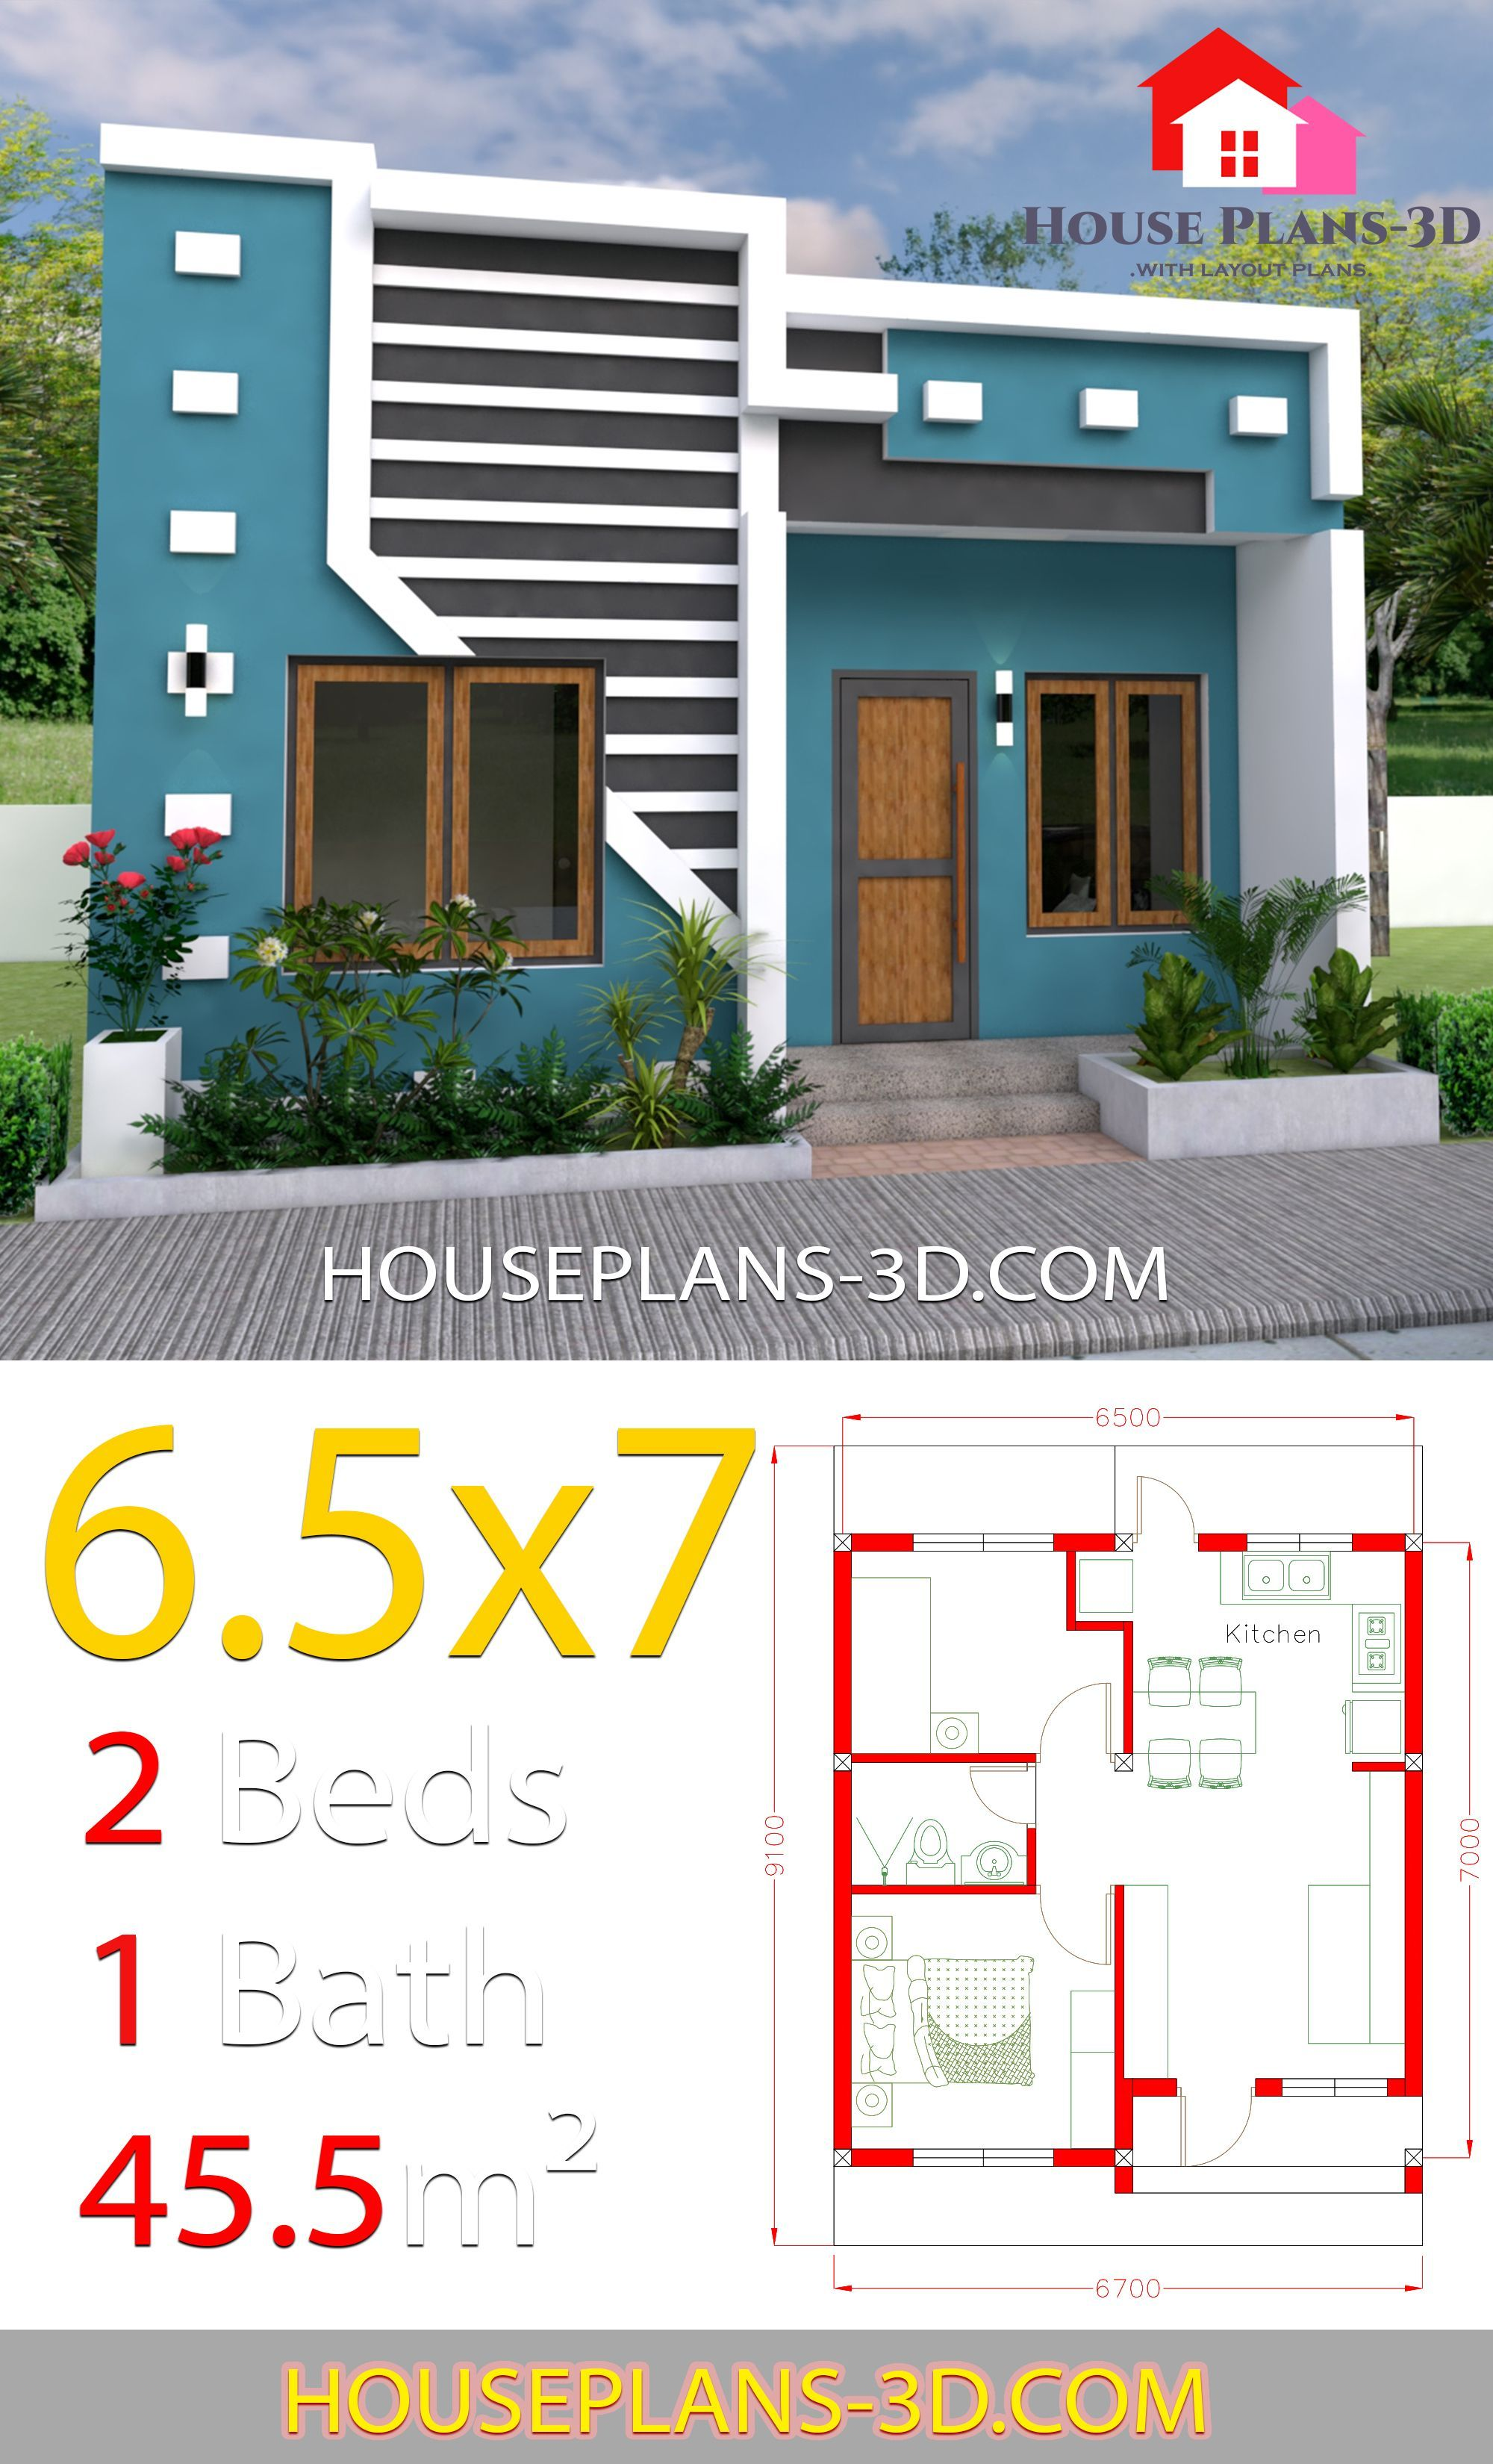 Small House Design 6 5x7 With 2 Bedrooms Full Plans Compactliving Small House Design 6 5x7 W Small House Design Small House Design Plans Small House Exteriors